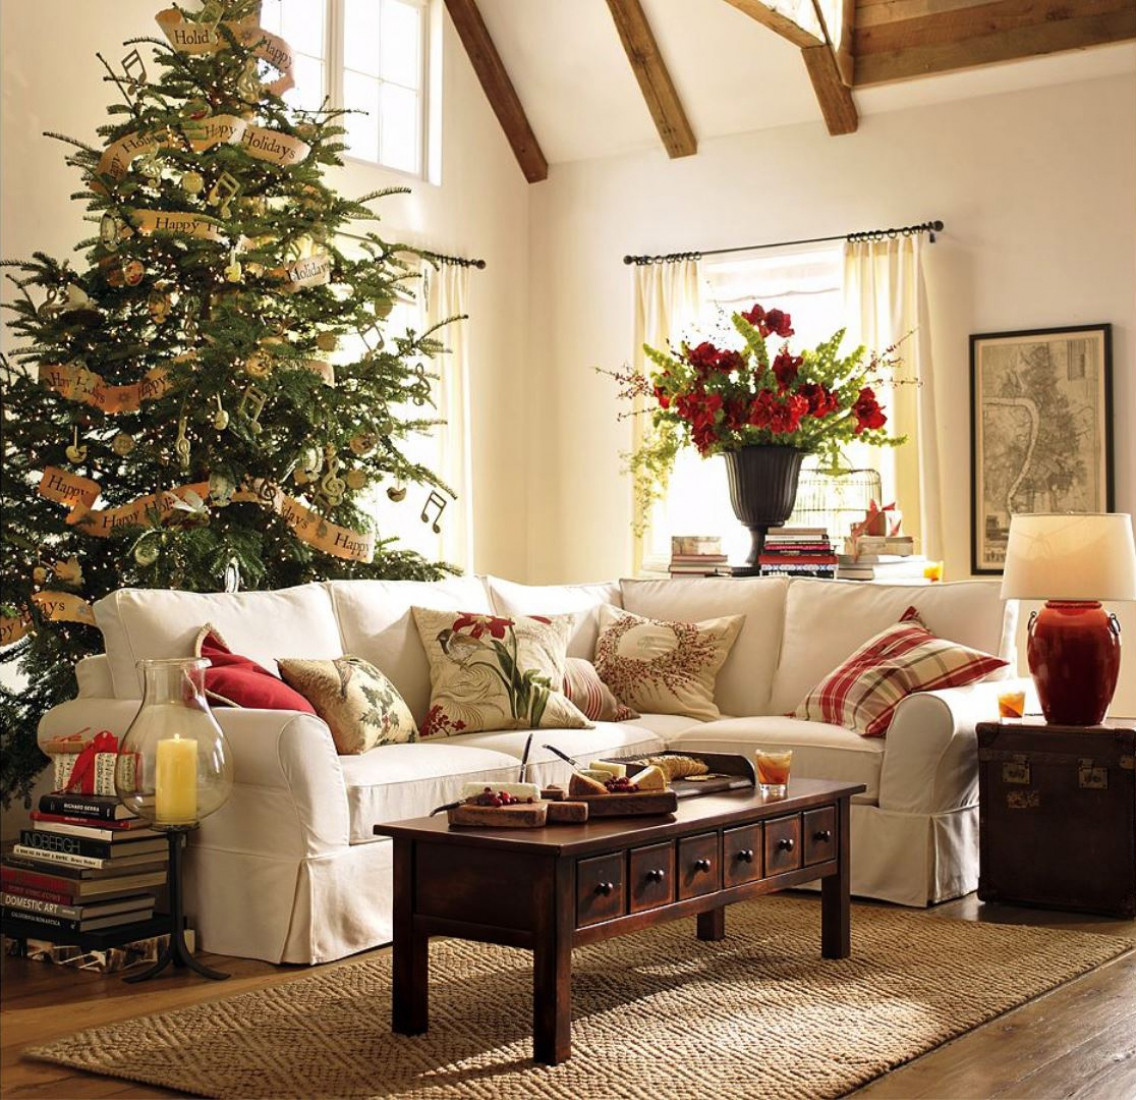 Christmas Decor For Living Room  6 Quick Tips on Rearranging your Living Room for the